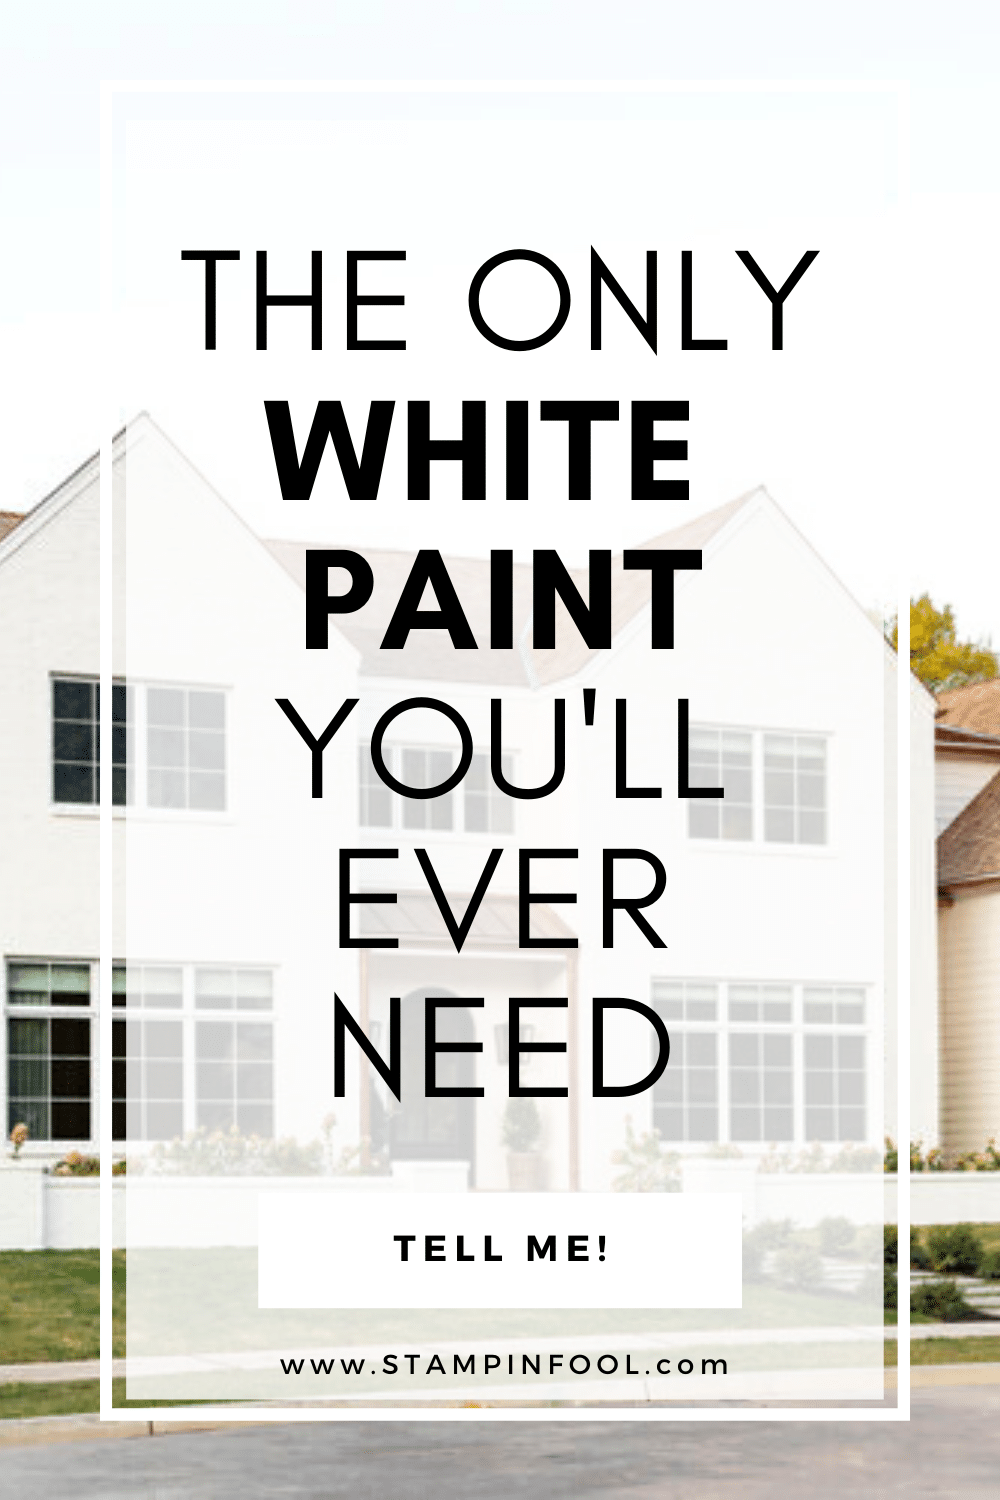 THE ONLY WHITE PAINT YOU'LL EVER NEED